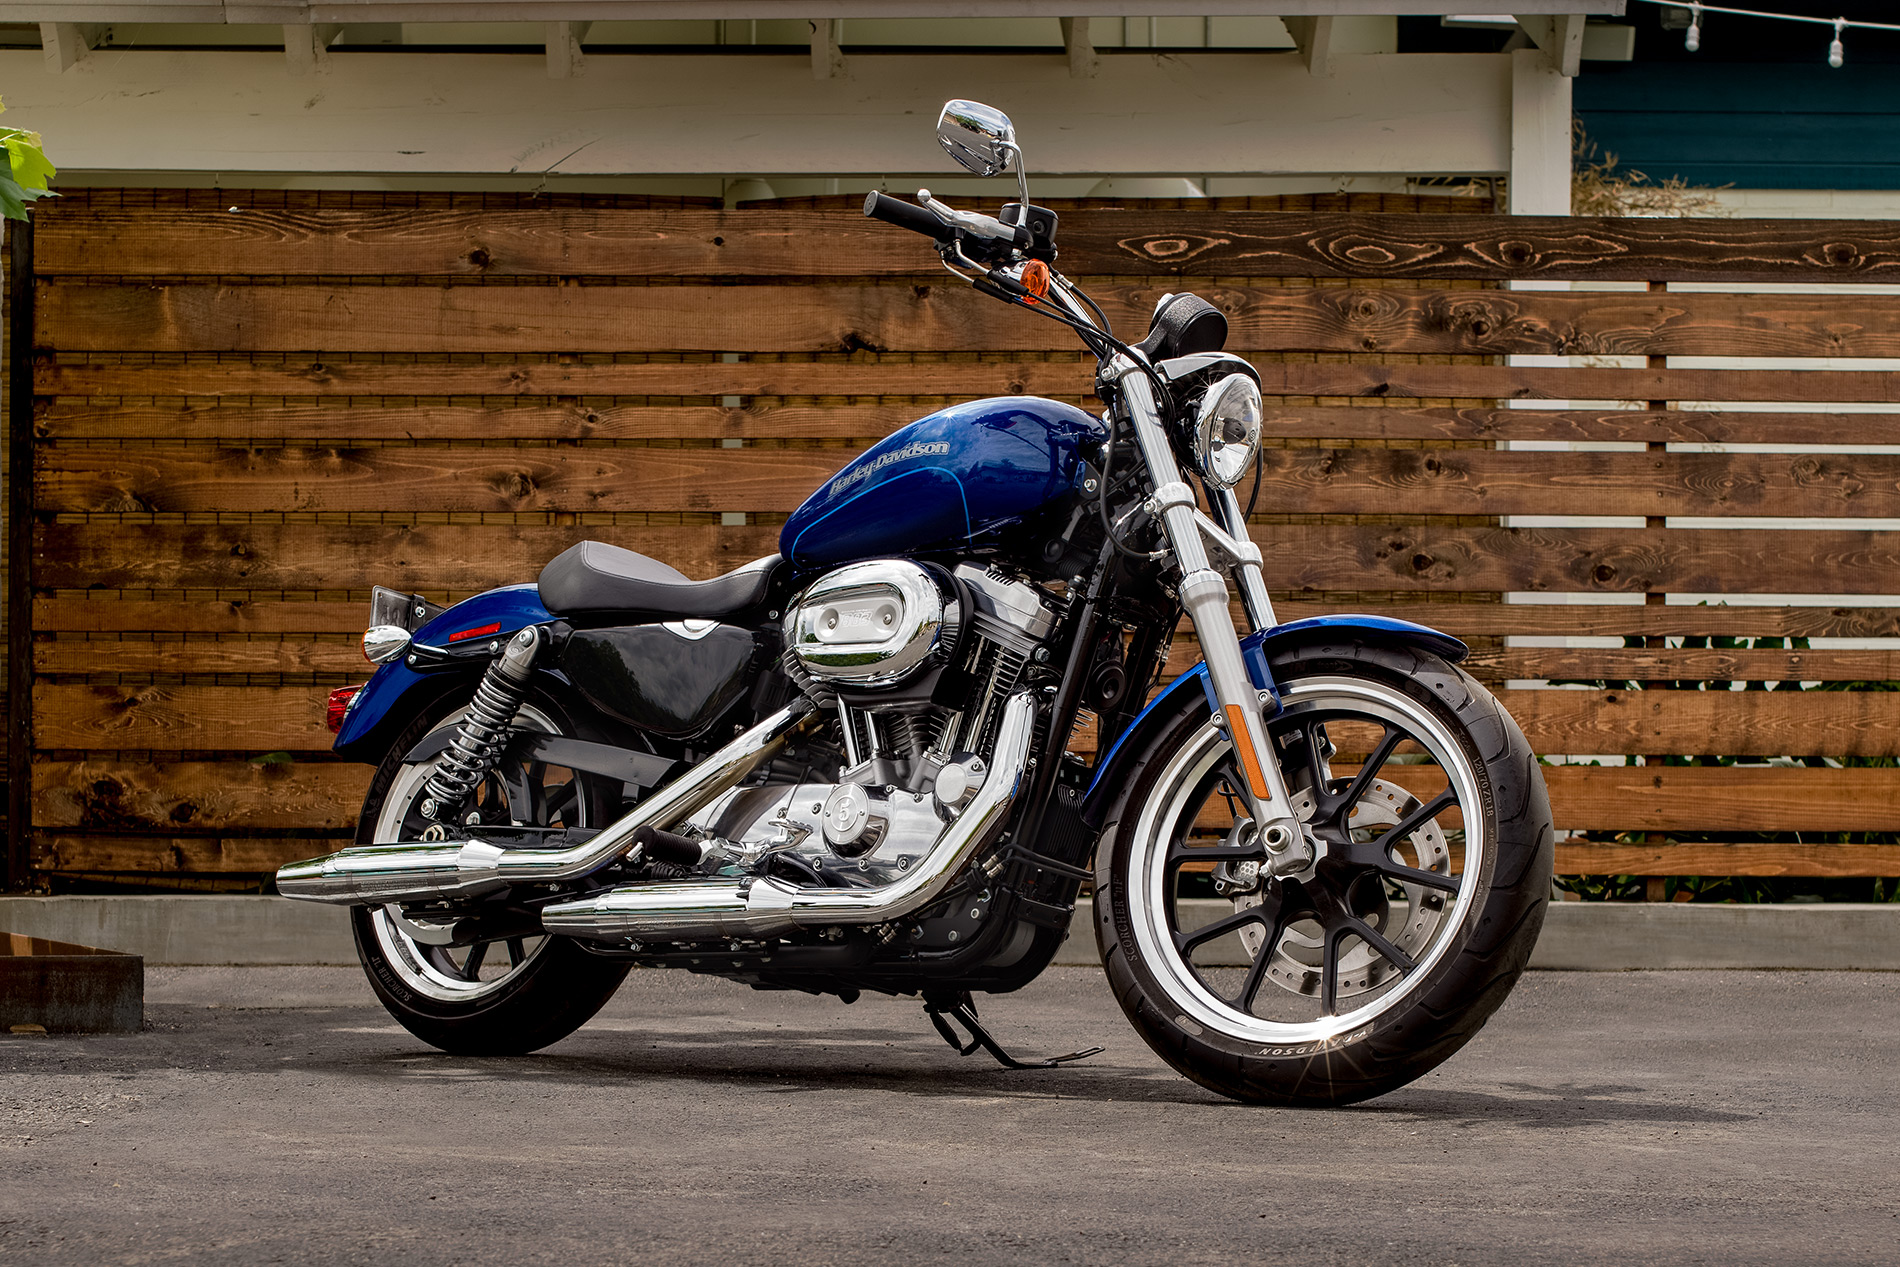 2016 harley-davidson sportster superlow and superlow 1200t in